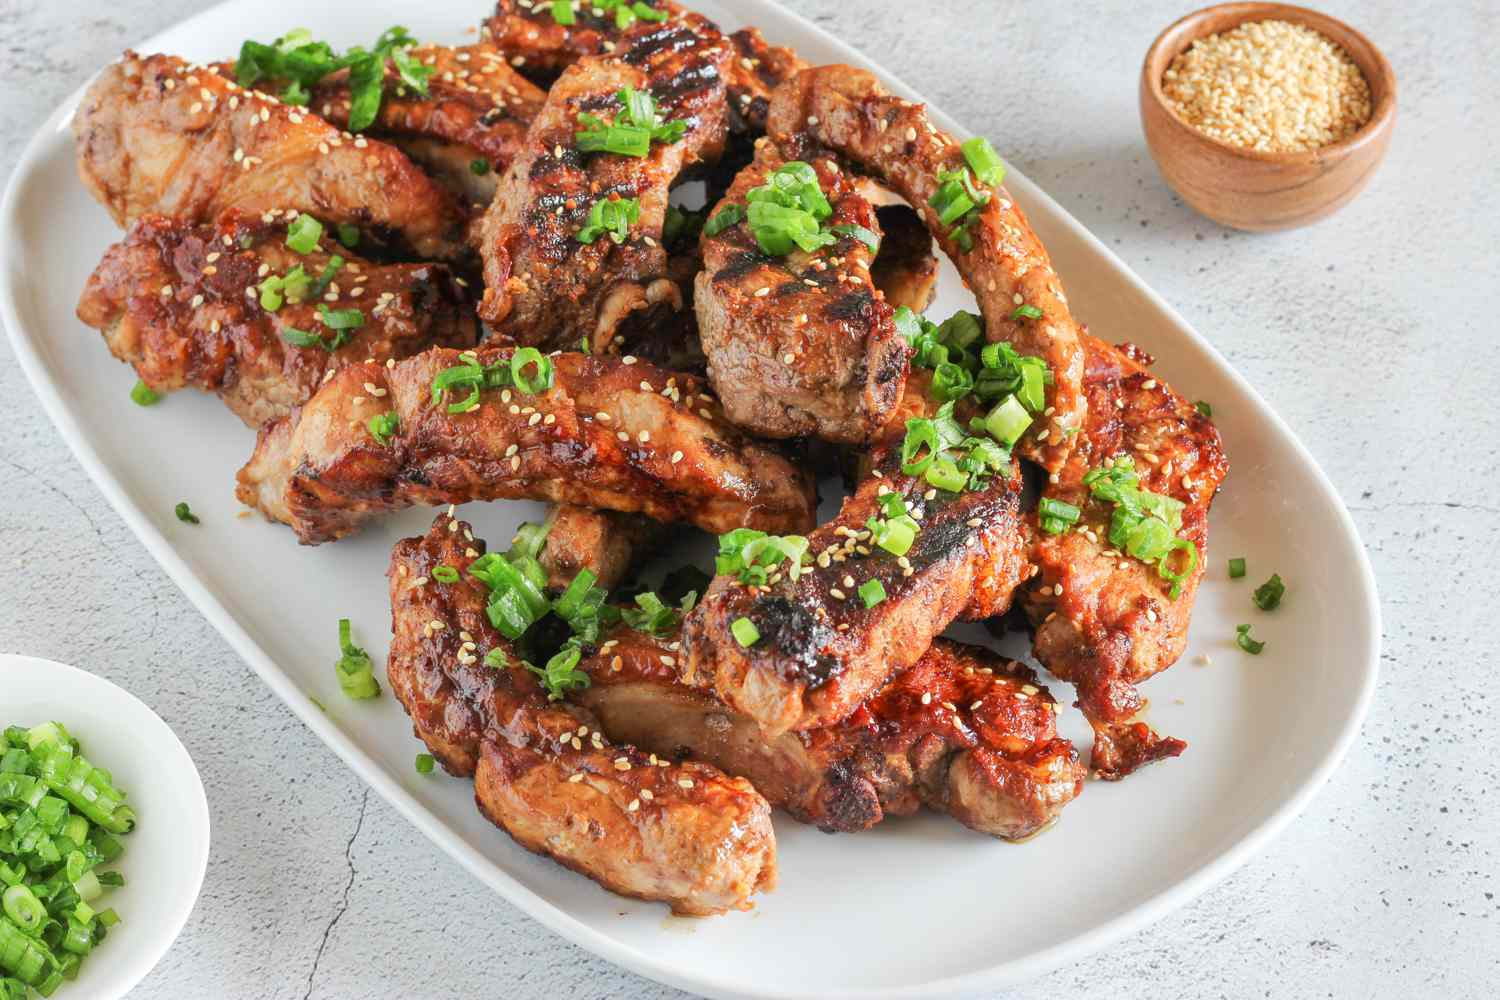 Chinese style ribs recipe